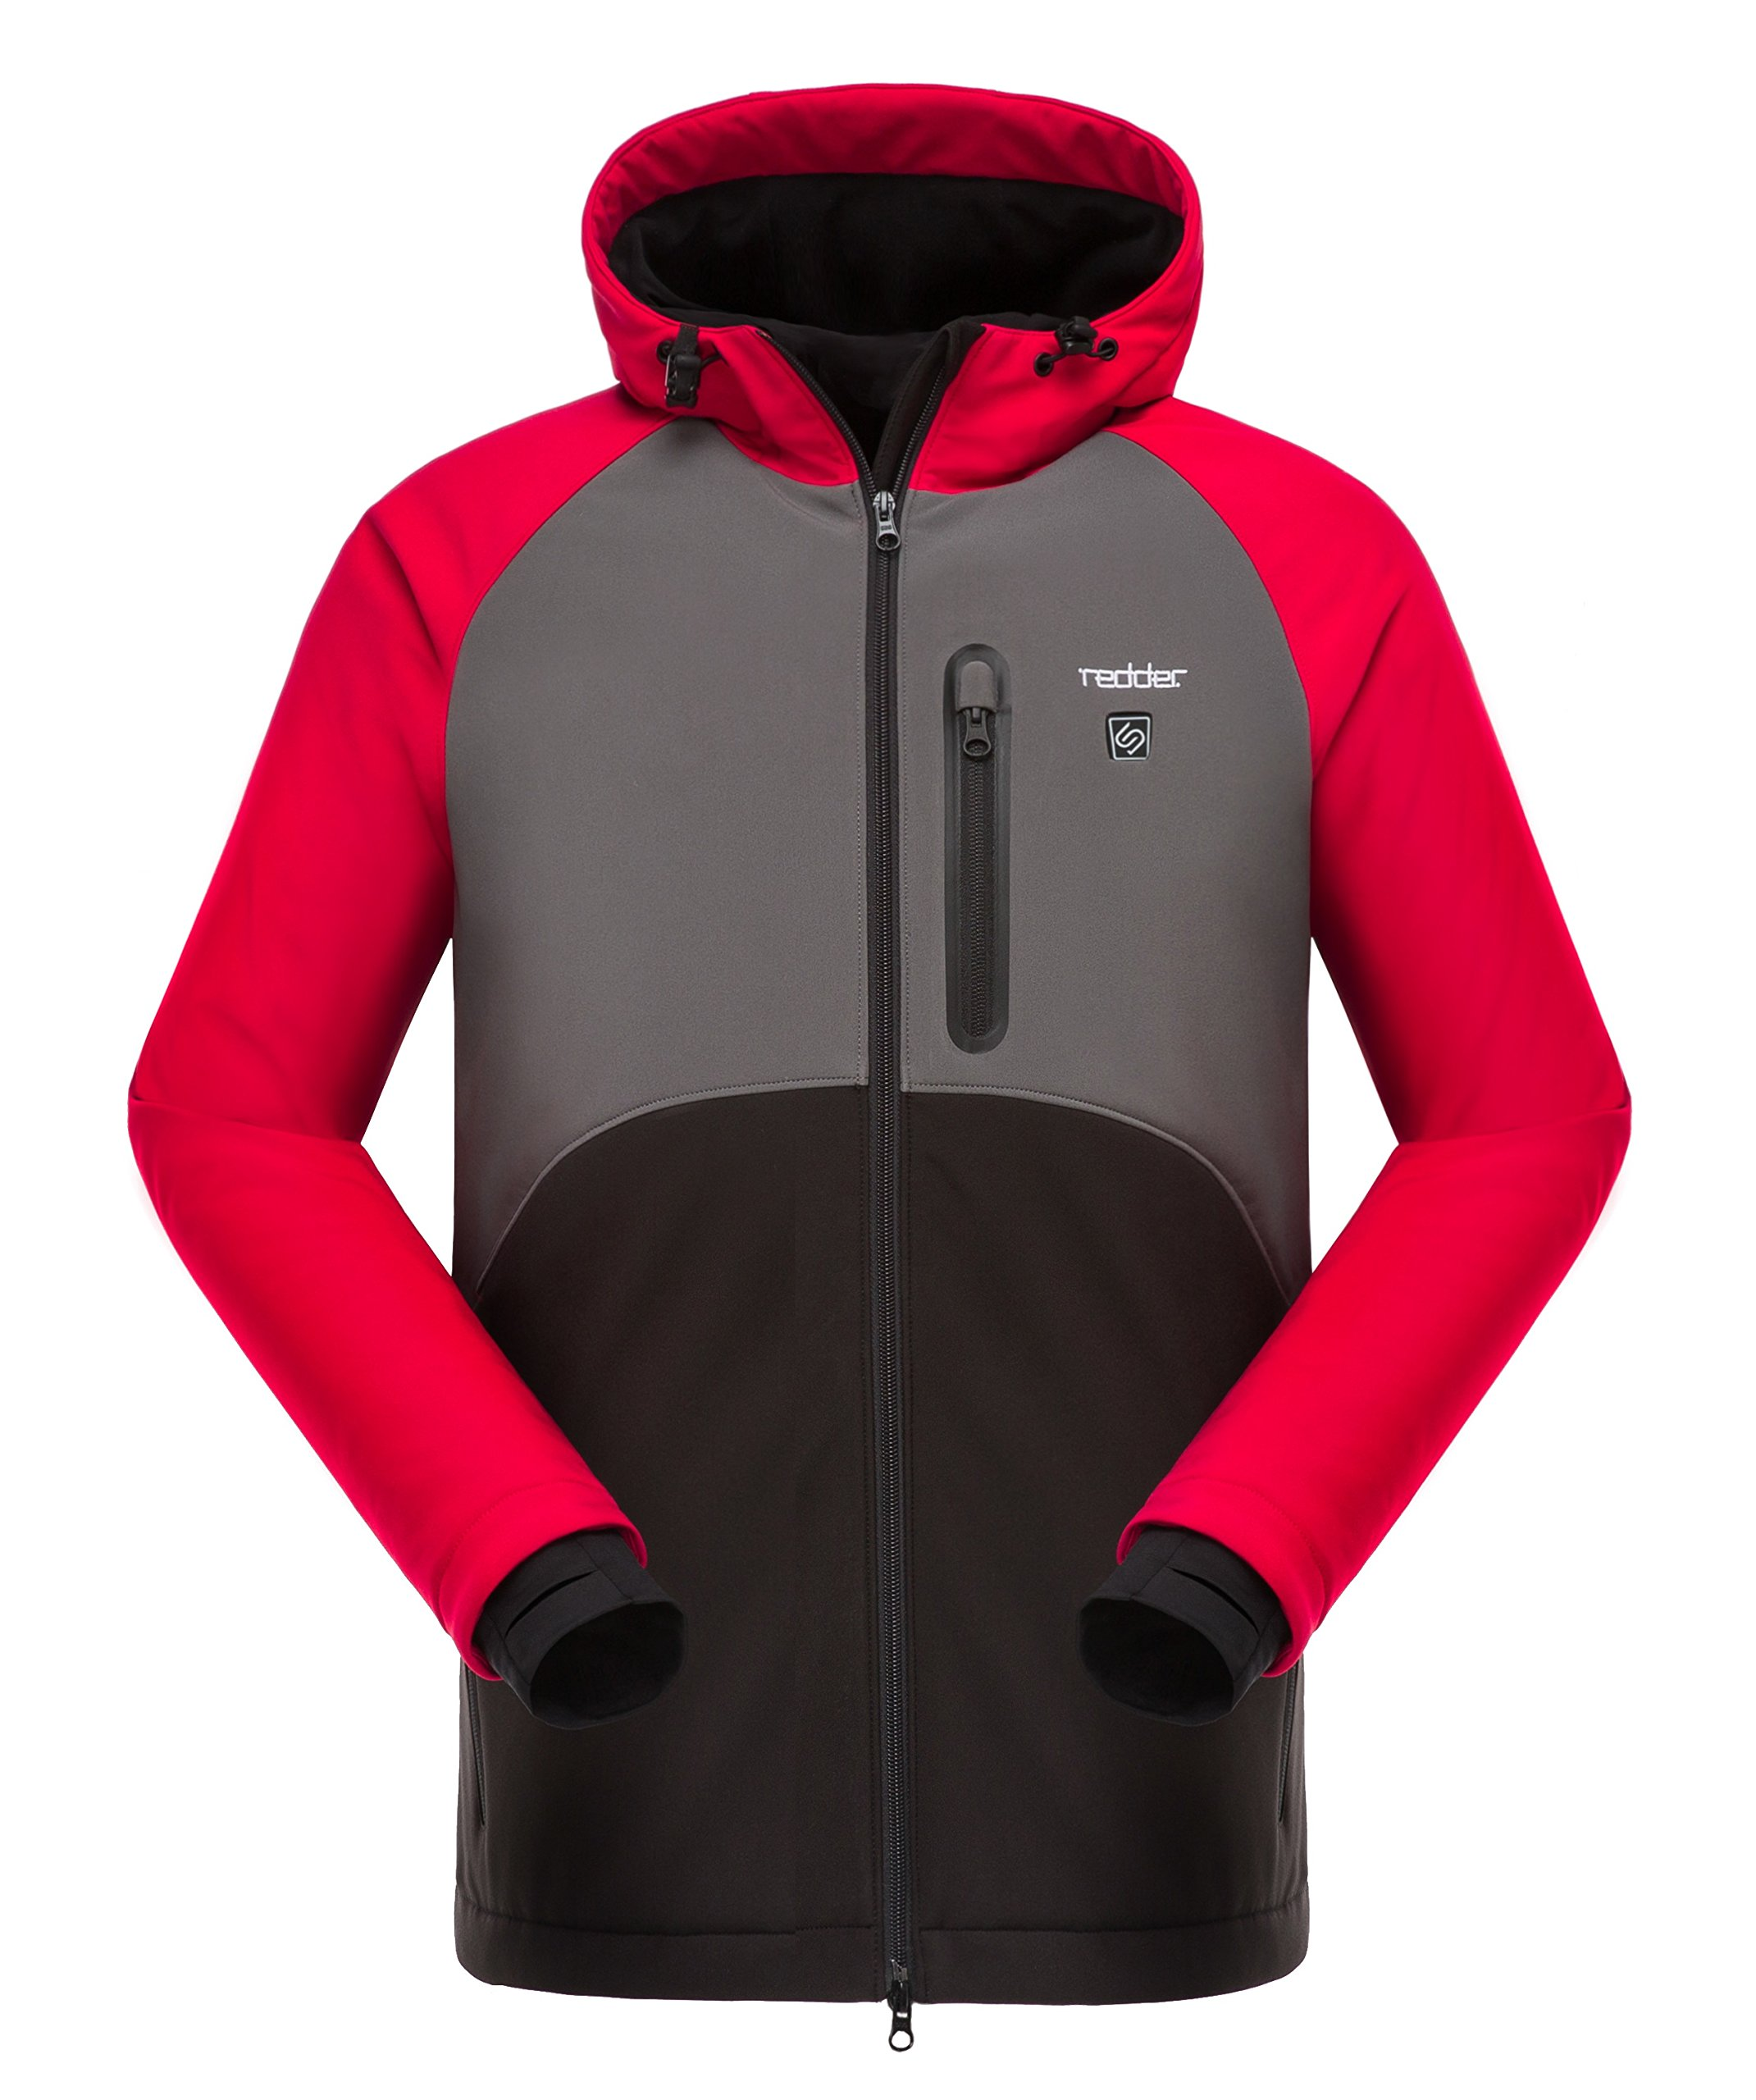 Heated Jacket for Women, Heating Hoodie Coat - Breathable Thermal Liner Heated by Portable Battery - for Climbing, Skiing, Hunting, Hiking, Riding, Outwork Heated Jacket ¡­